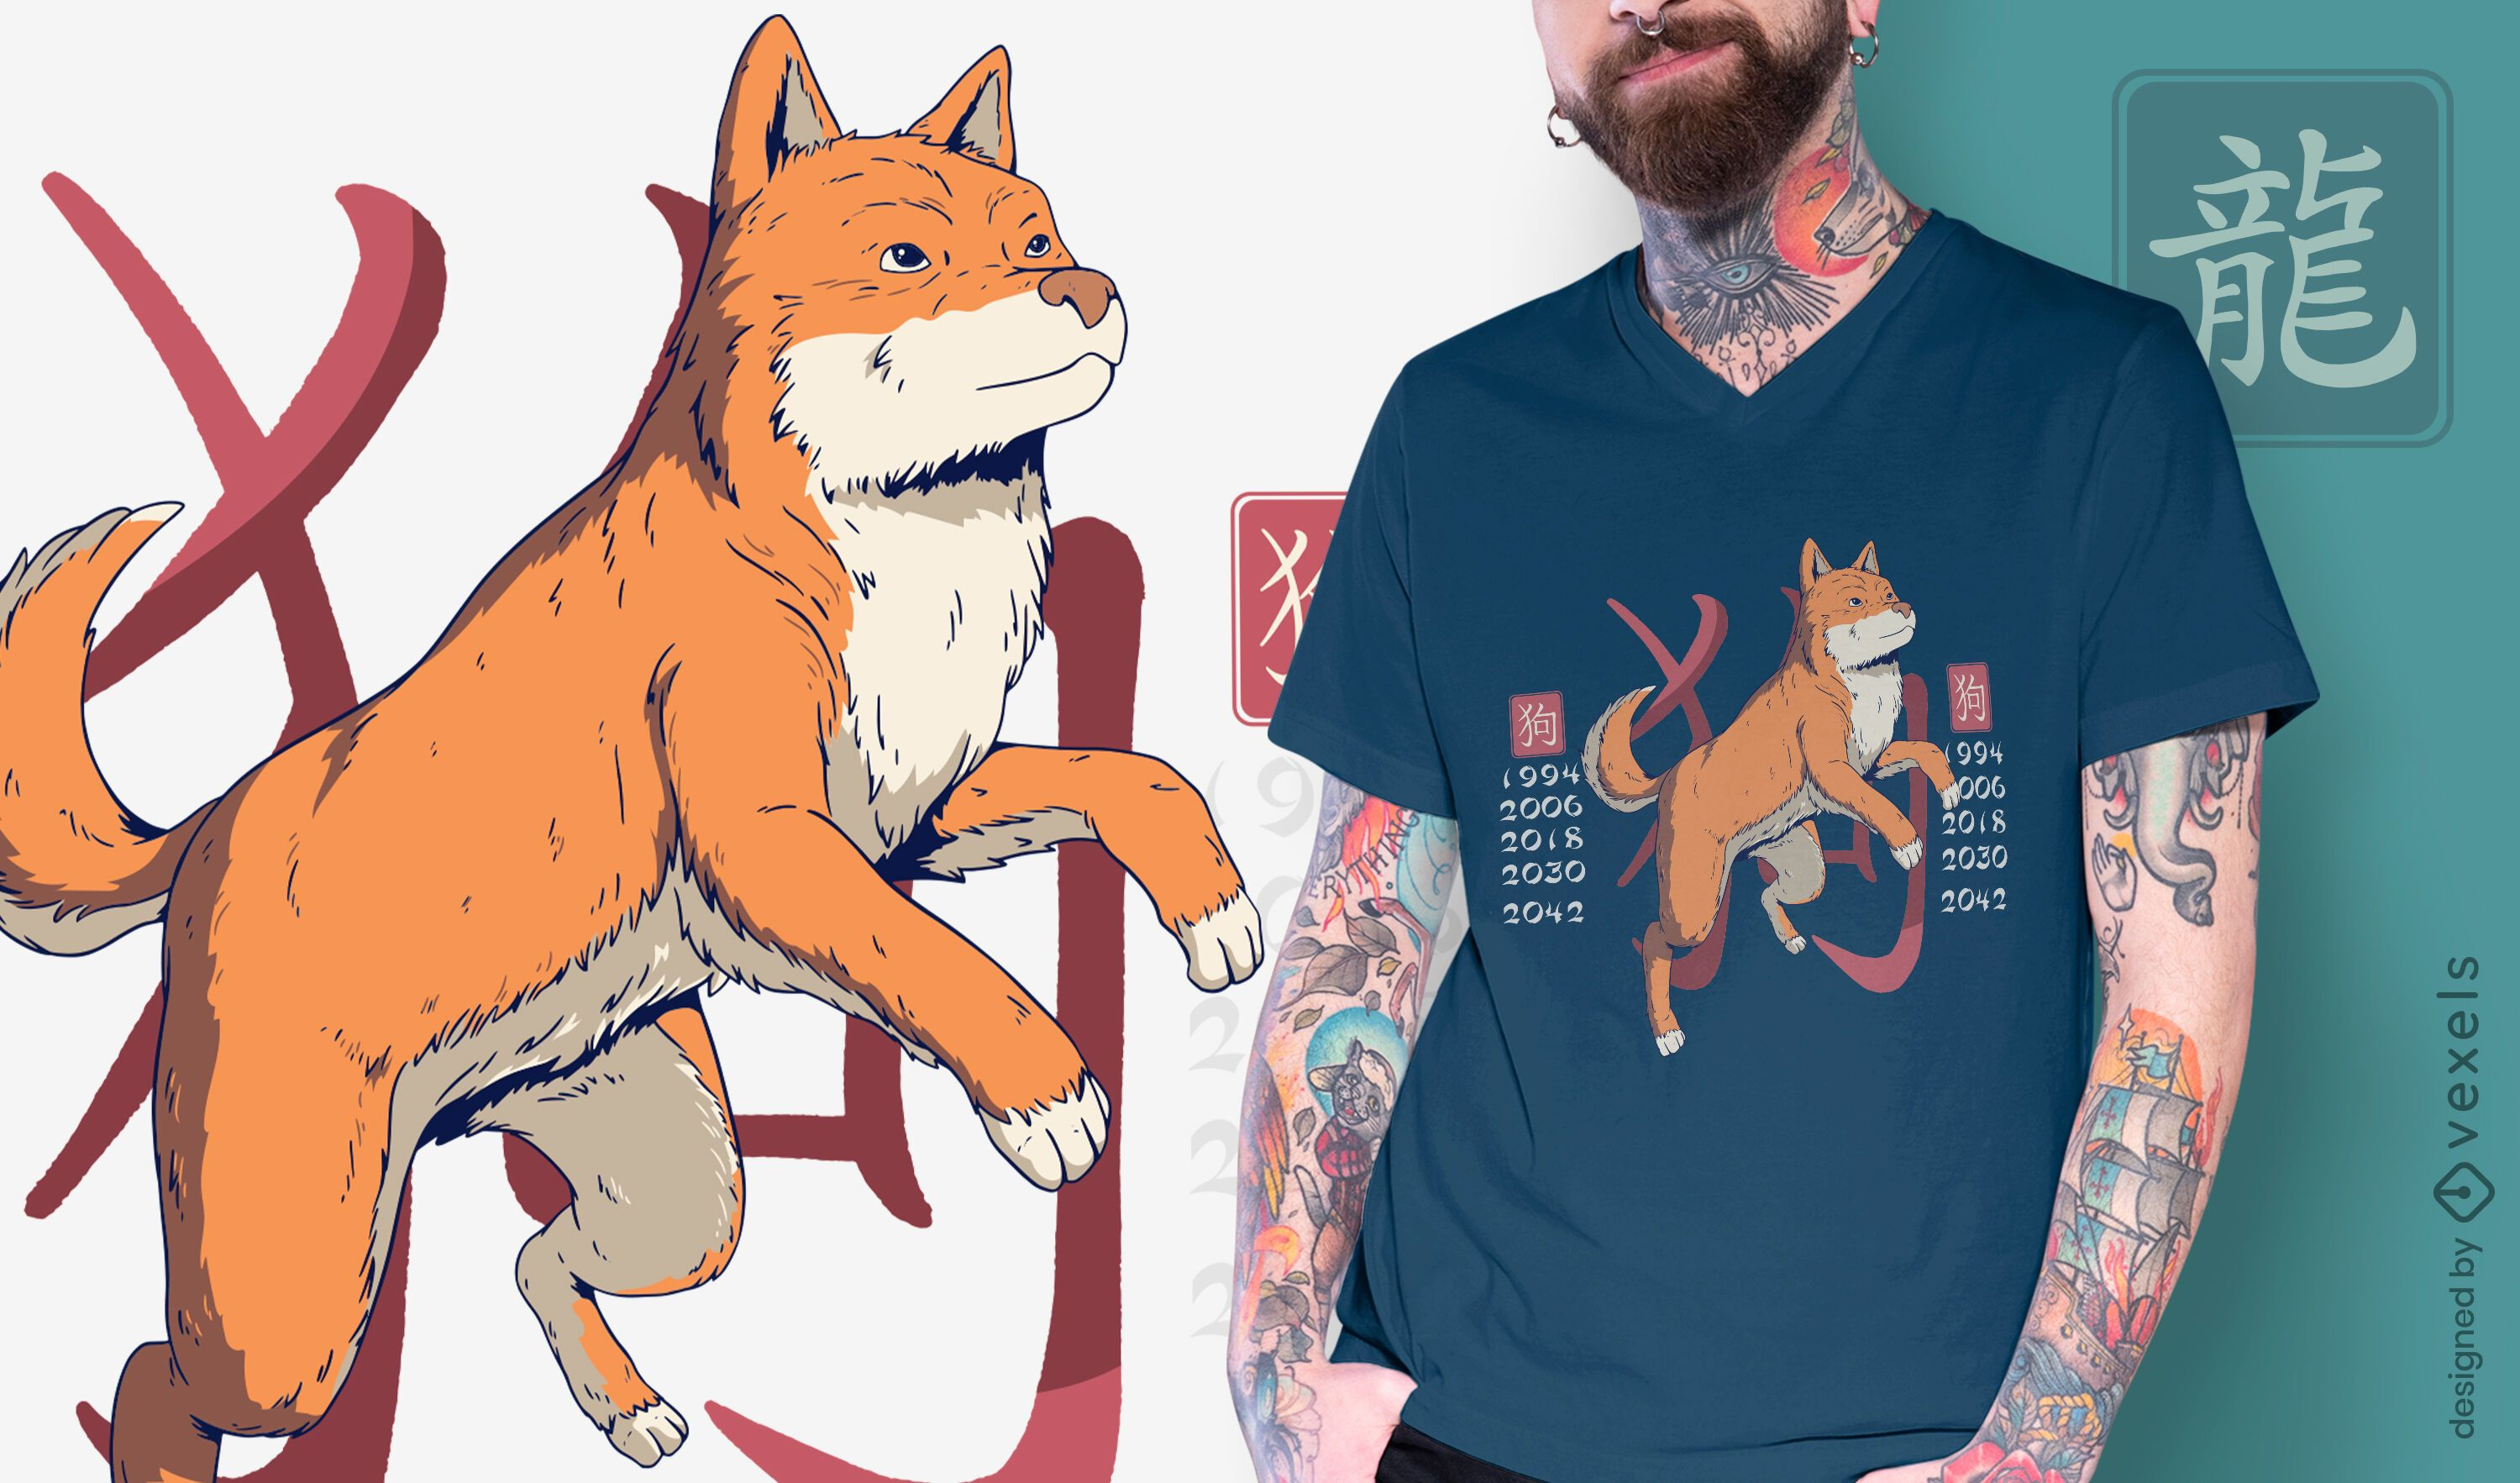 Year of the dog t-shirt design